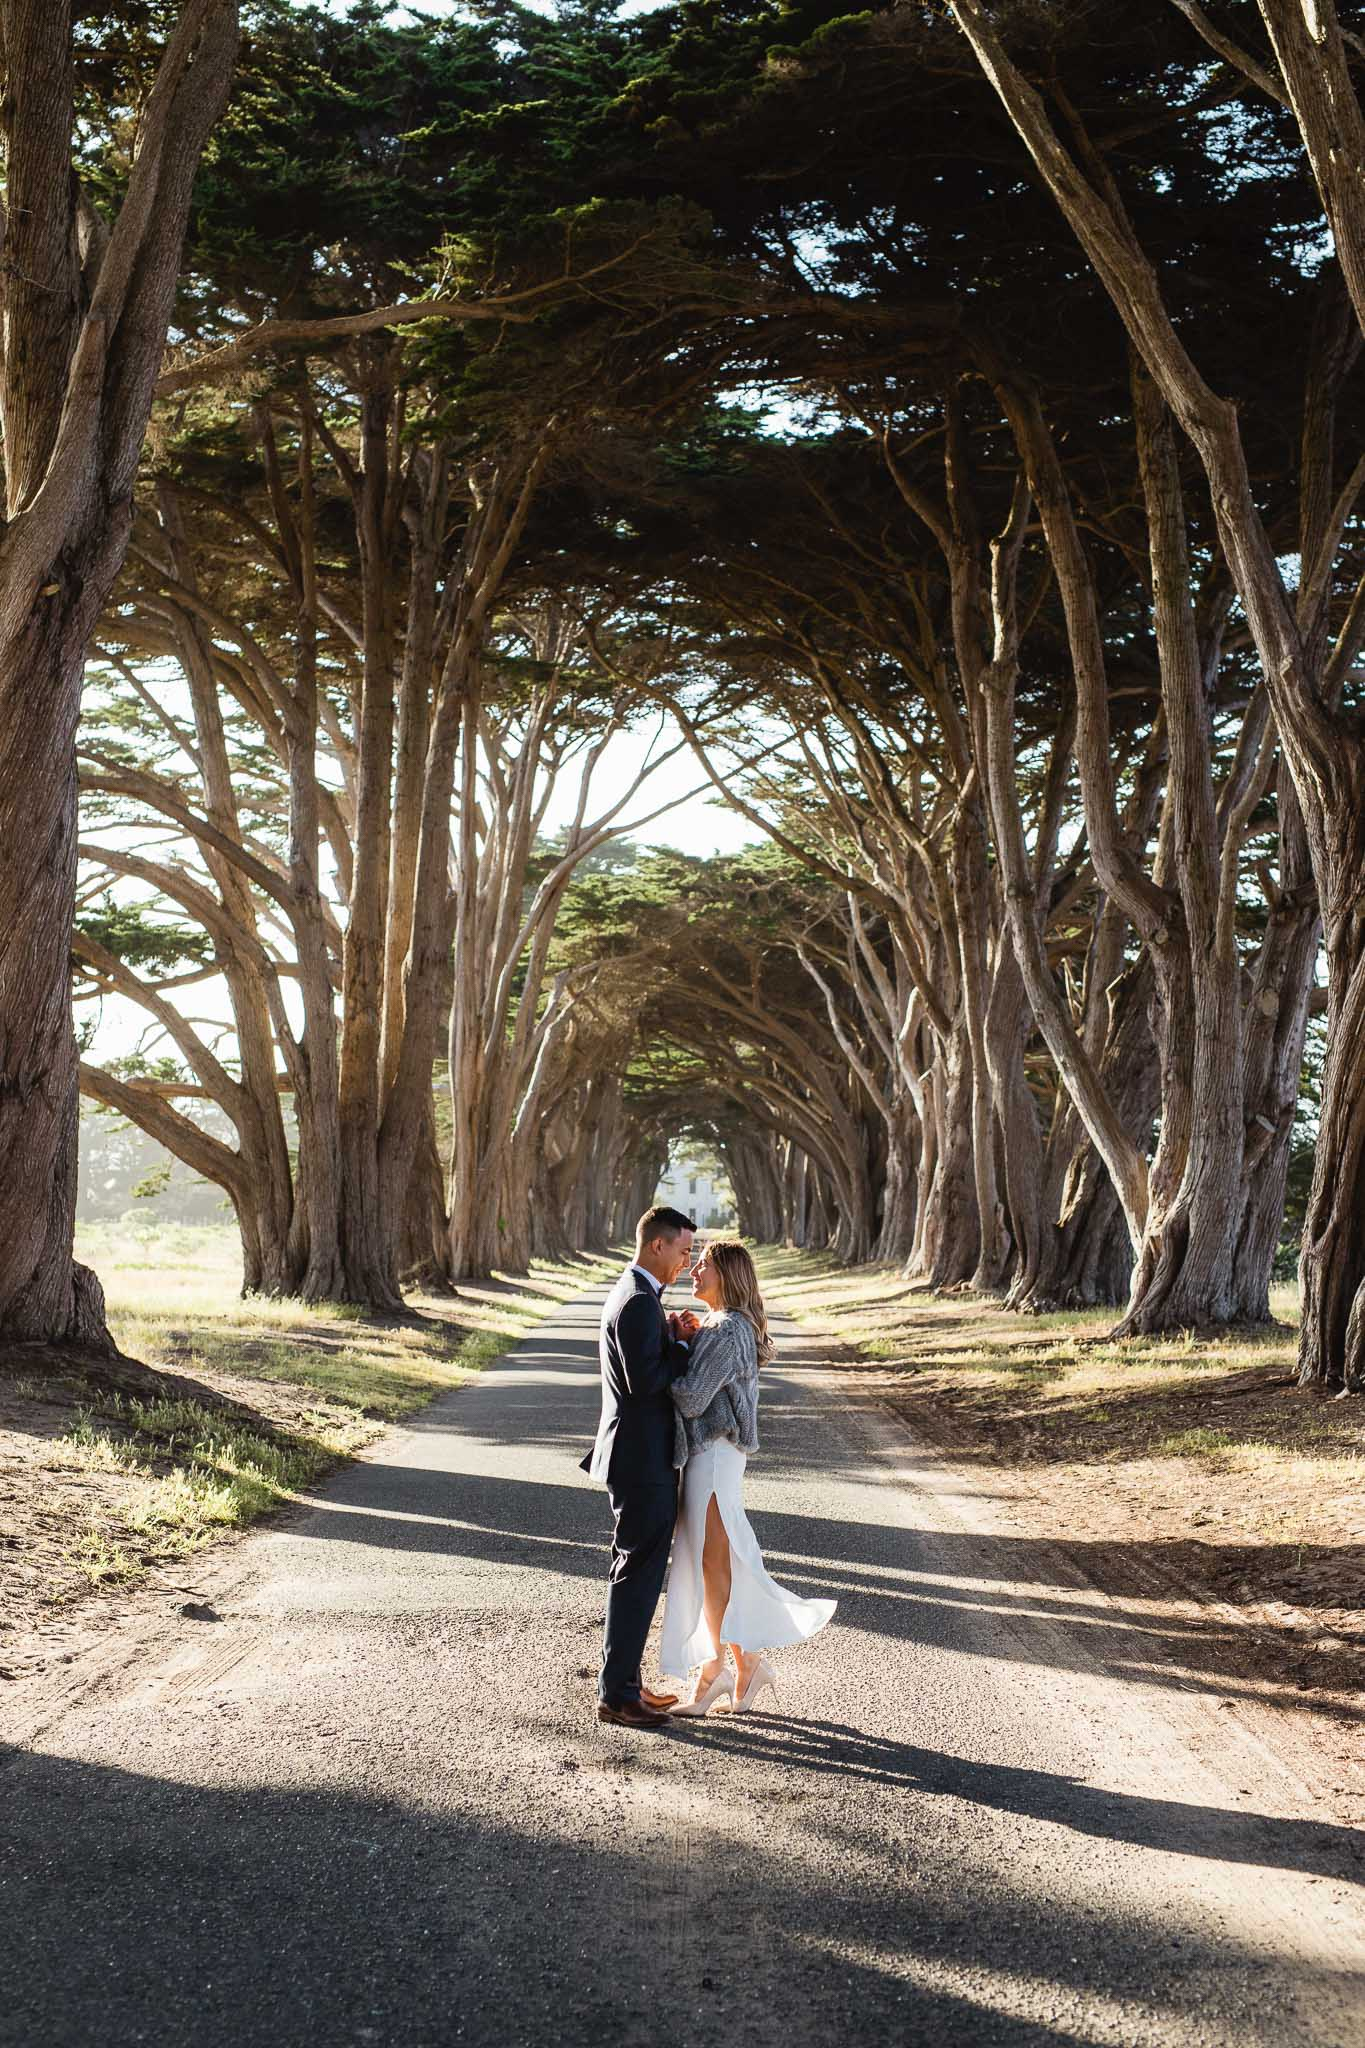 Elopements - Just you and your love and the start of your adventure together. We'll go anywhere in the world with you, be your witnesses, and tell your story.